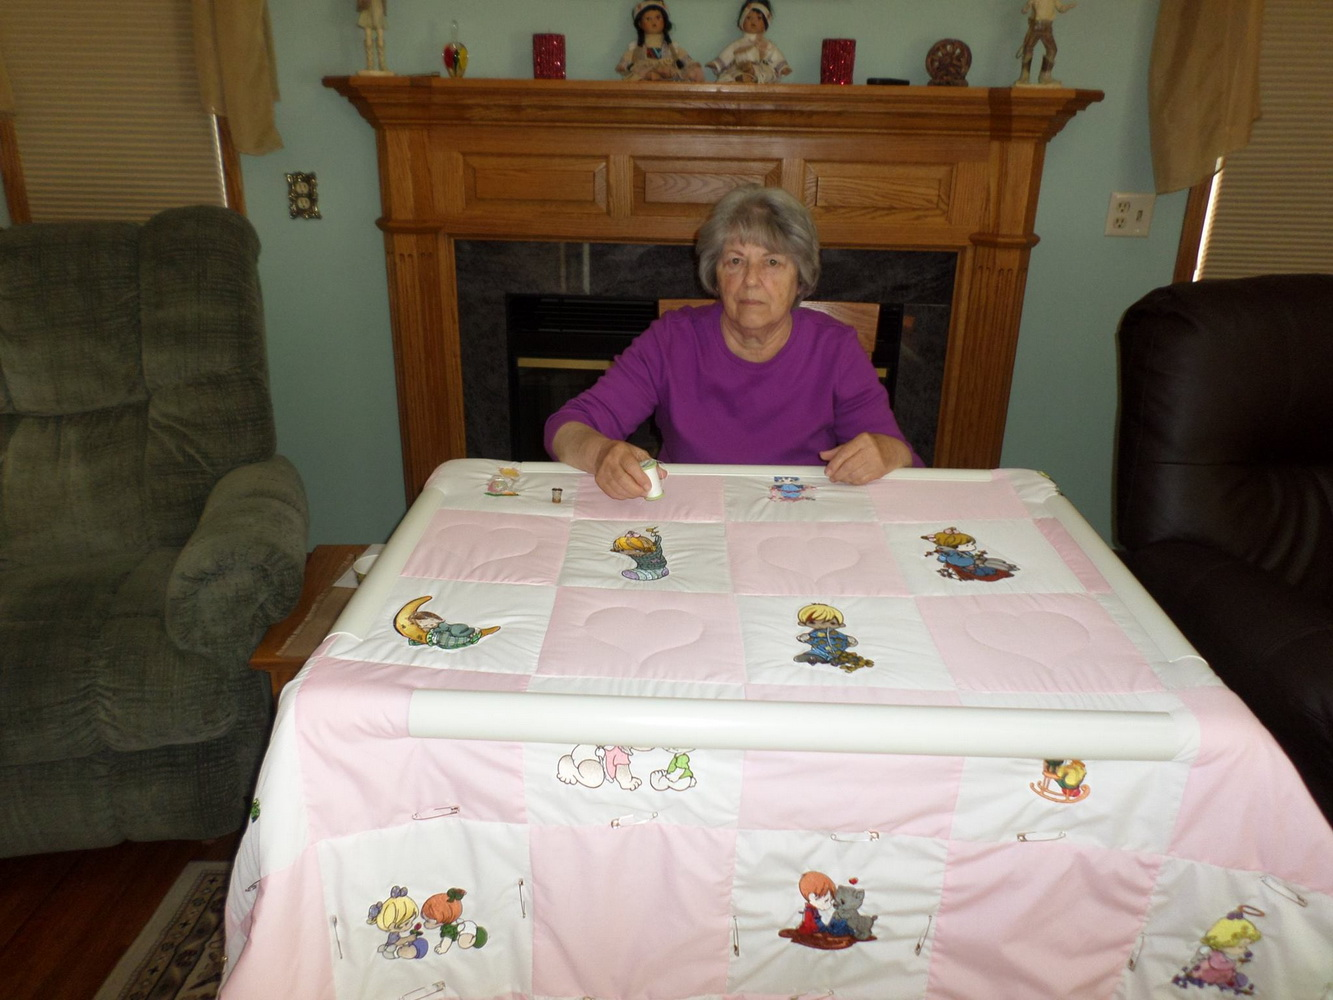 Embroidered Precious Moments designs on quilt